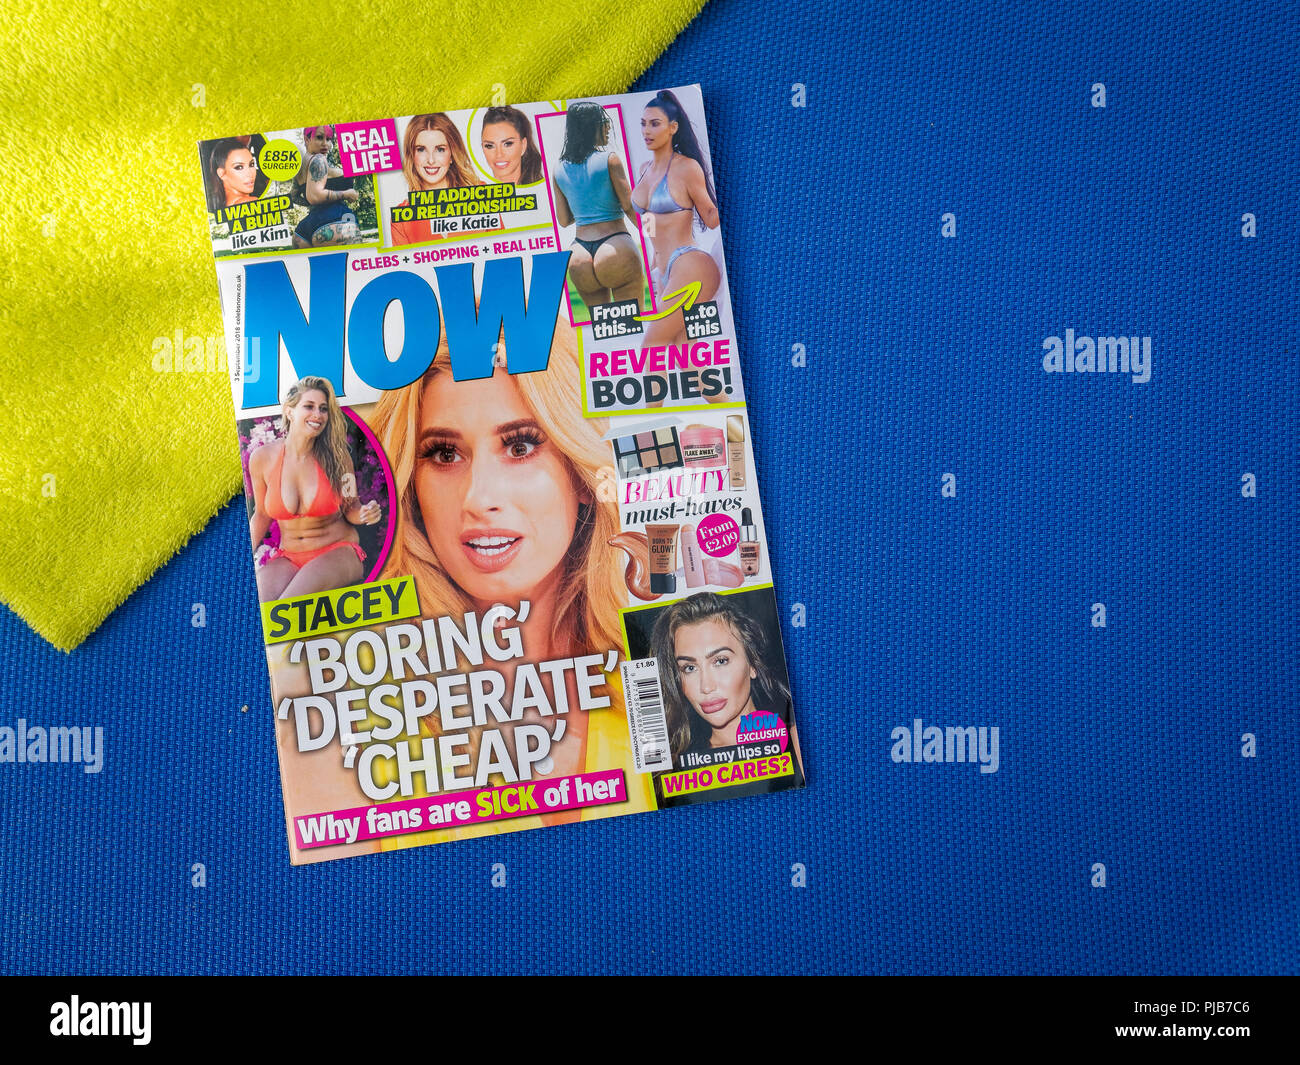 Copy of Now Magazine on a Sunbed, Now magazine is a weekly celebrity news round-up aimed at women readers, The magazine was launched in 1996. - Stock Image